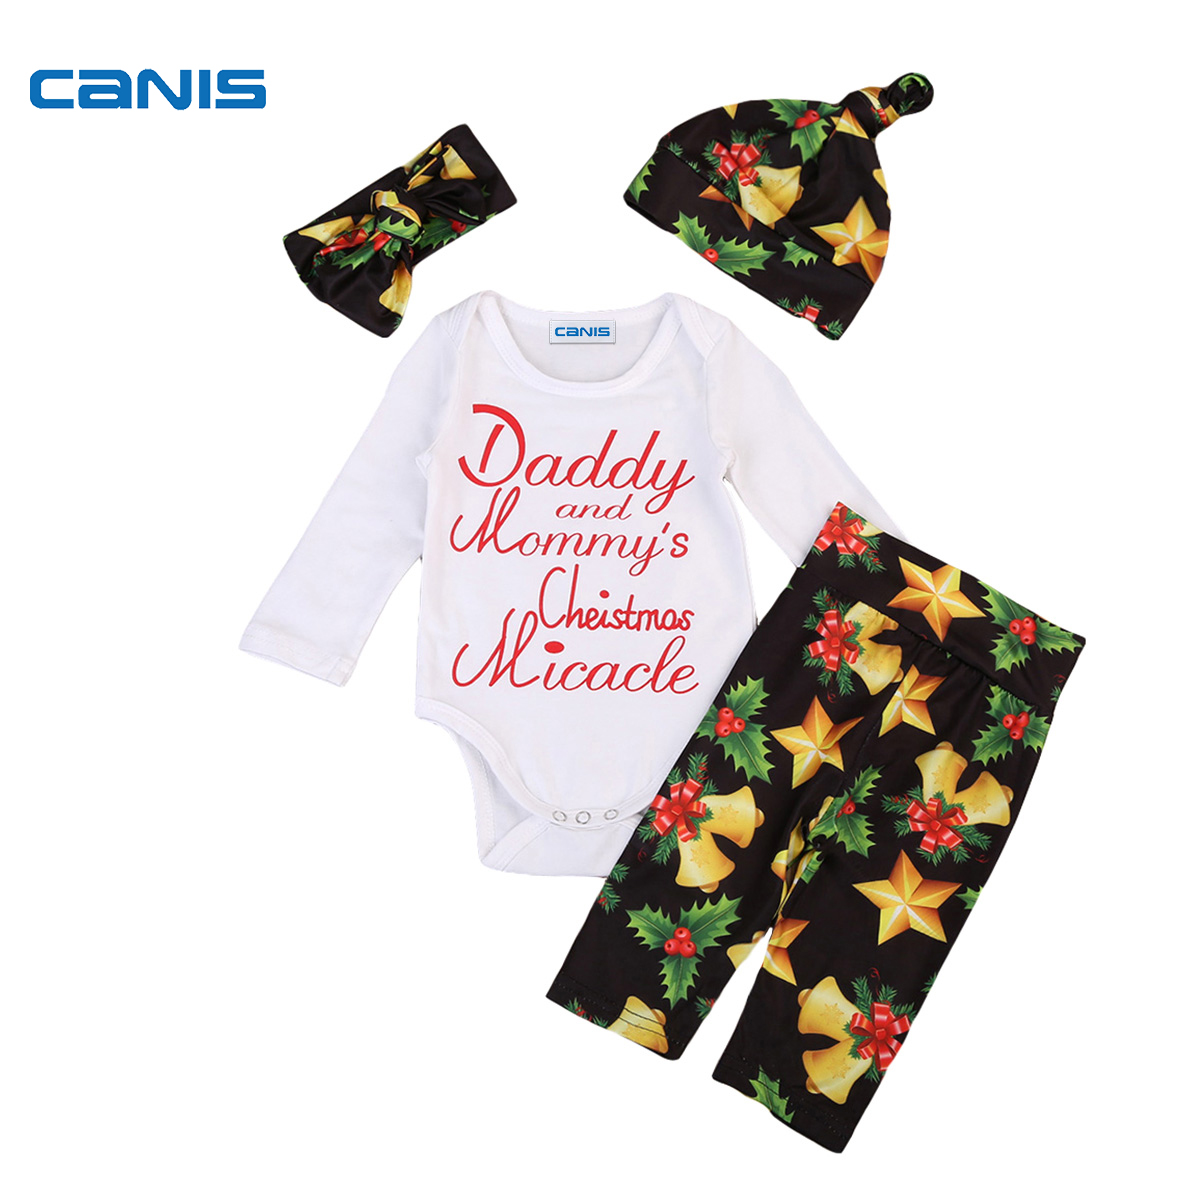 2017 New Brand Christmas Newborn Toddler Infant Baby Girls Clothes Romper Floral Leggings Pant Headband Hat 4Pcs Outfits Set 4pcs set baby girls clothing newborn baby clothes christmas infant jumpsuit clothes xmas bebe suits toddler romper tutu dresses